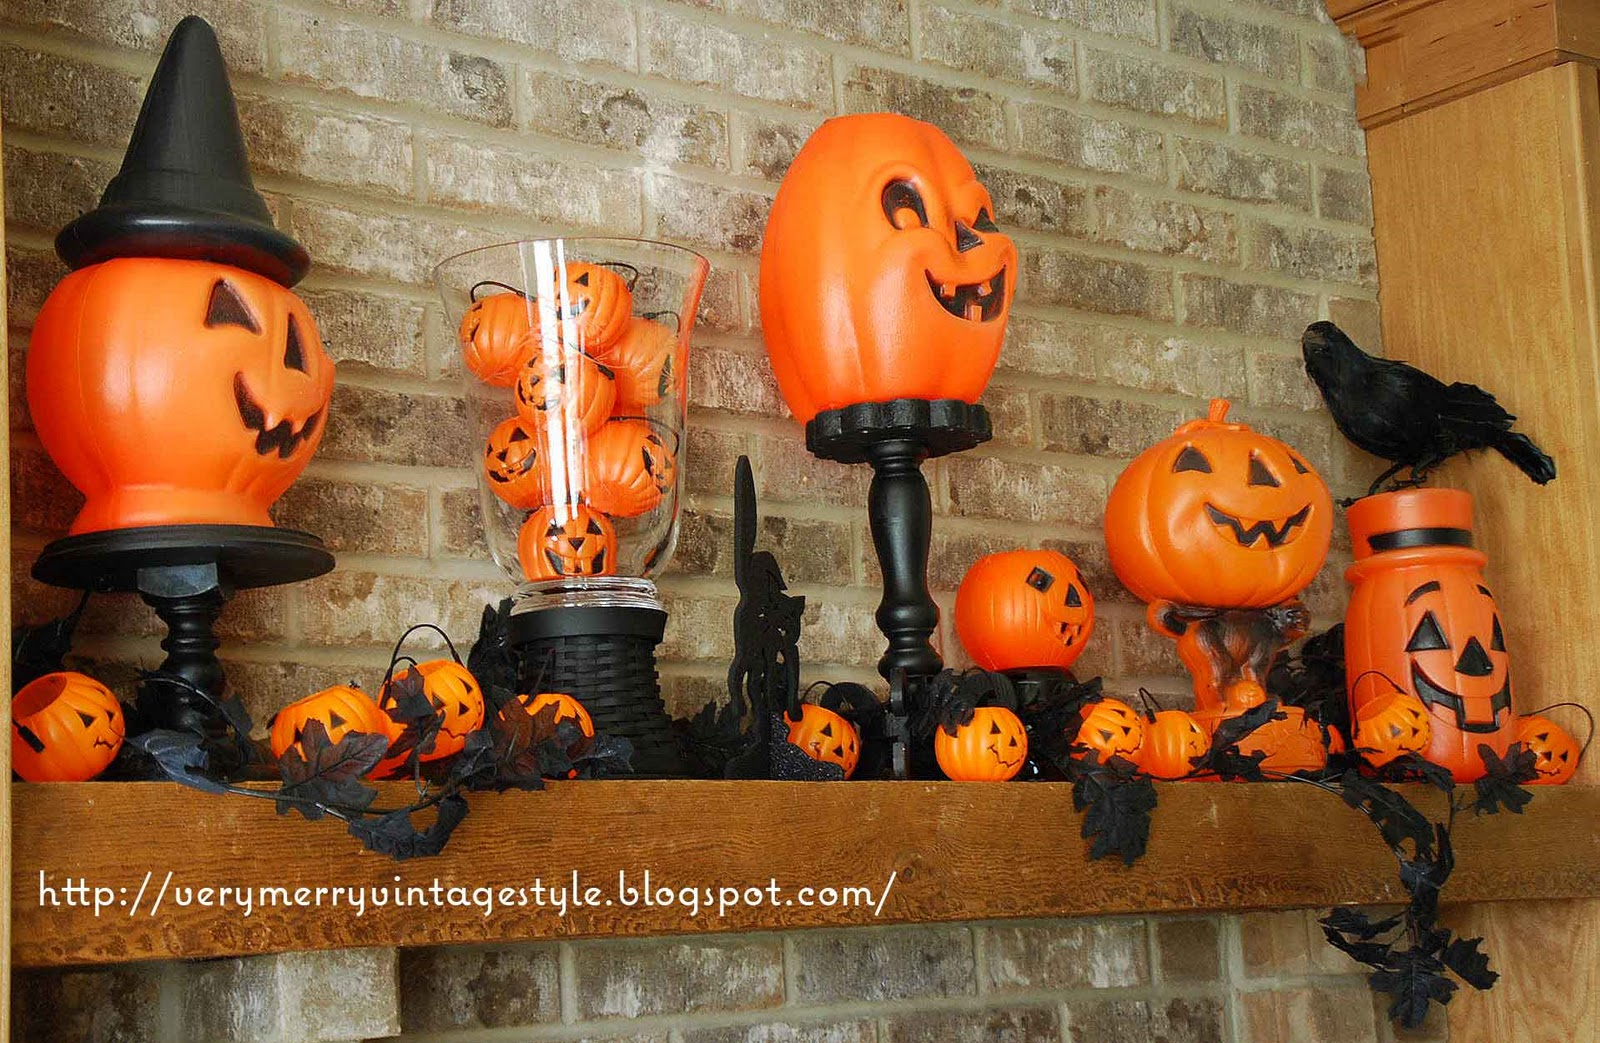 Very merry vintage syle cute spooky vintage halloween for Decoration halloween